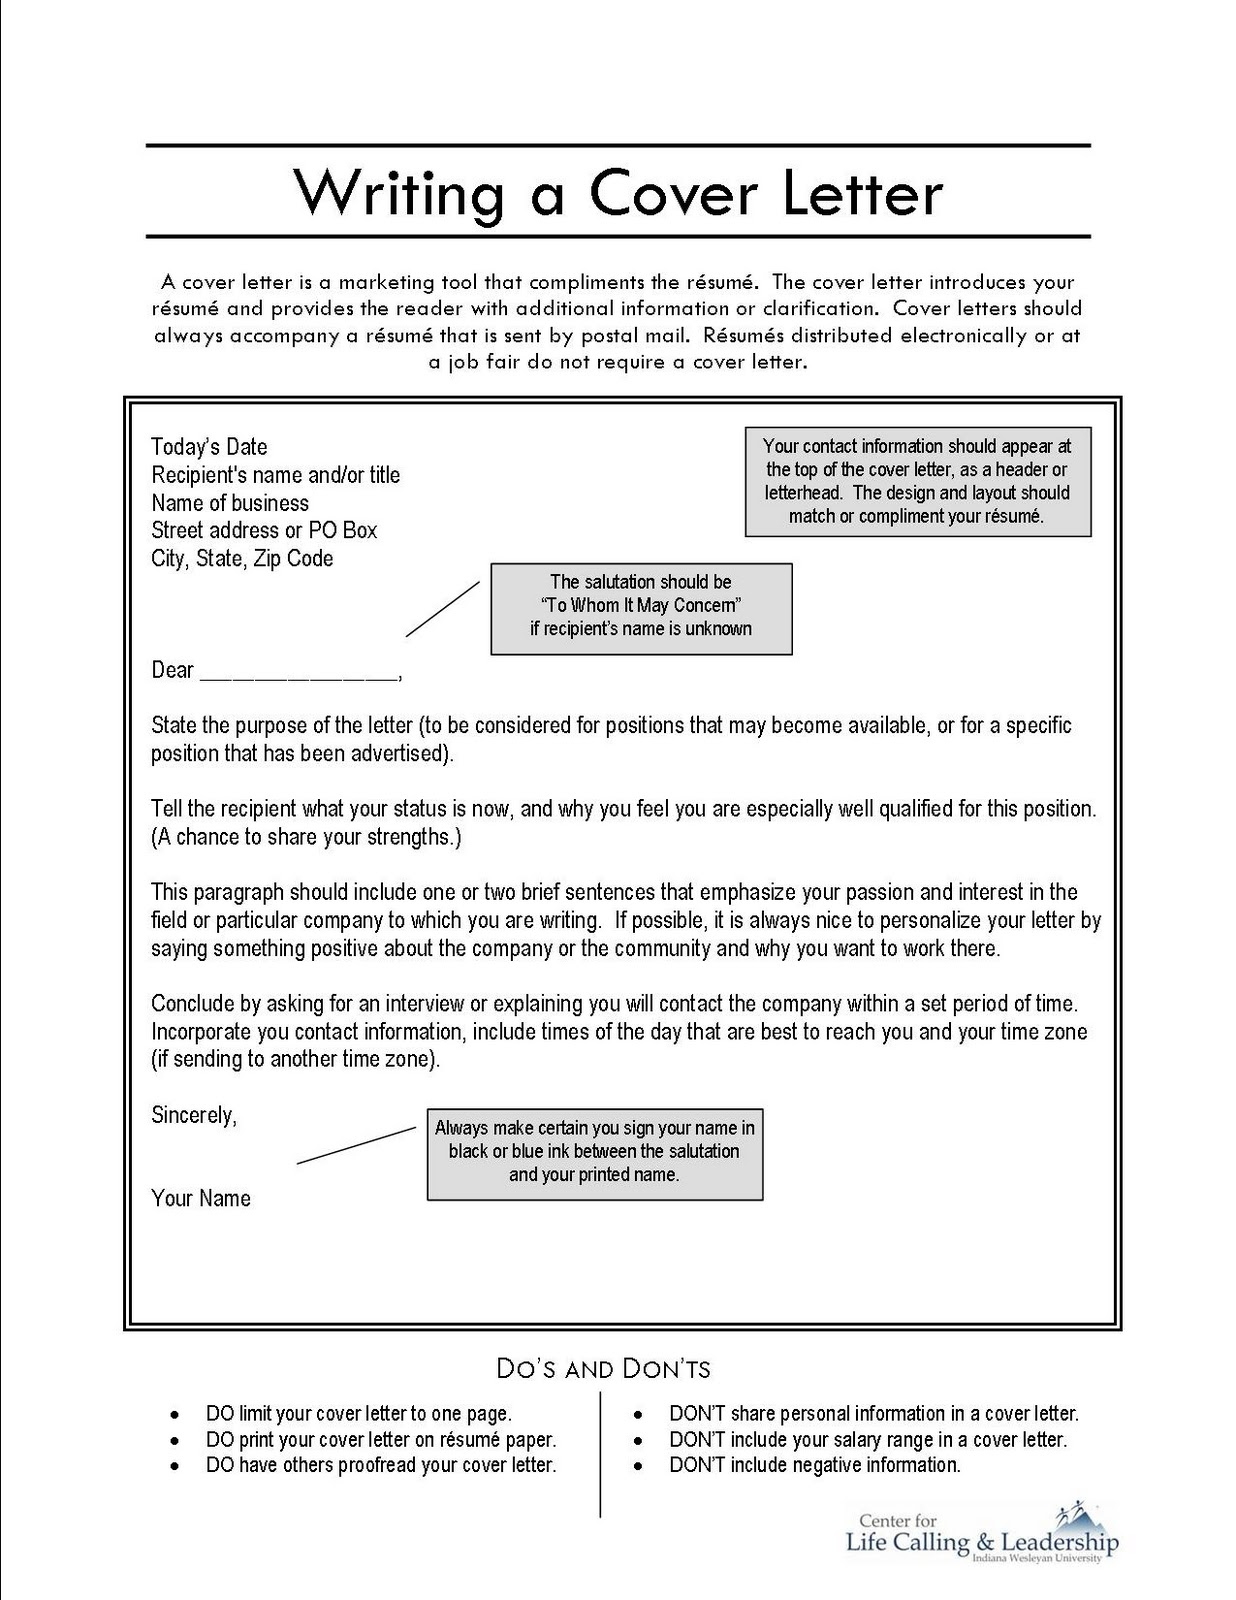 I need help writing a cover letter